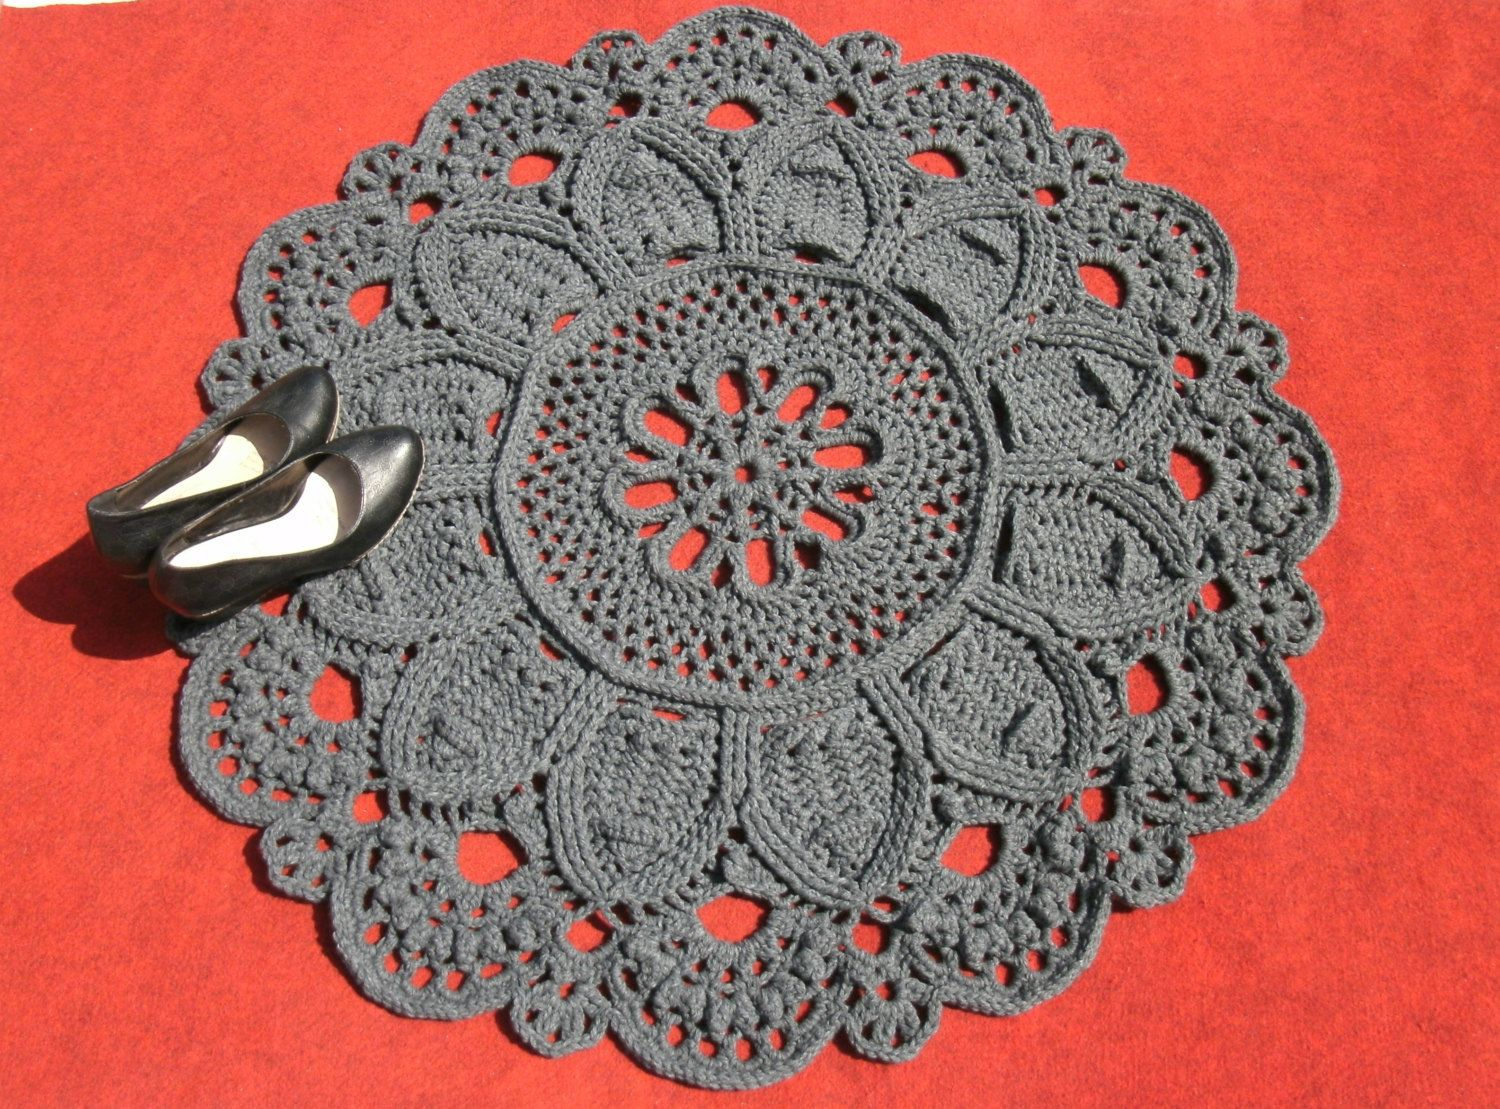 Round doily rug 37 inches Crochet rug Grey doily rug Decorative ...